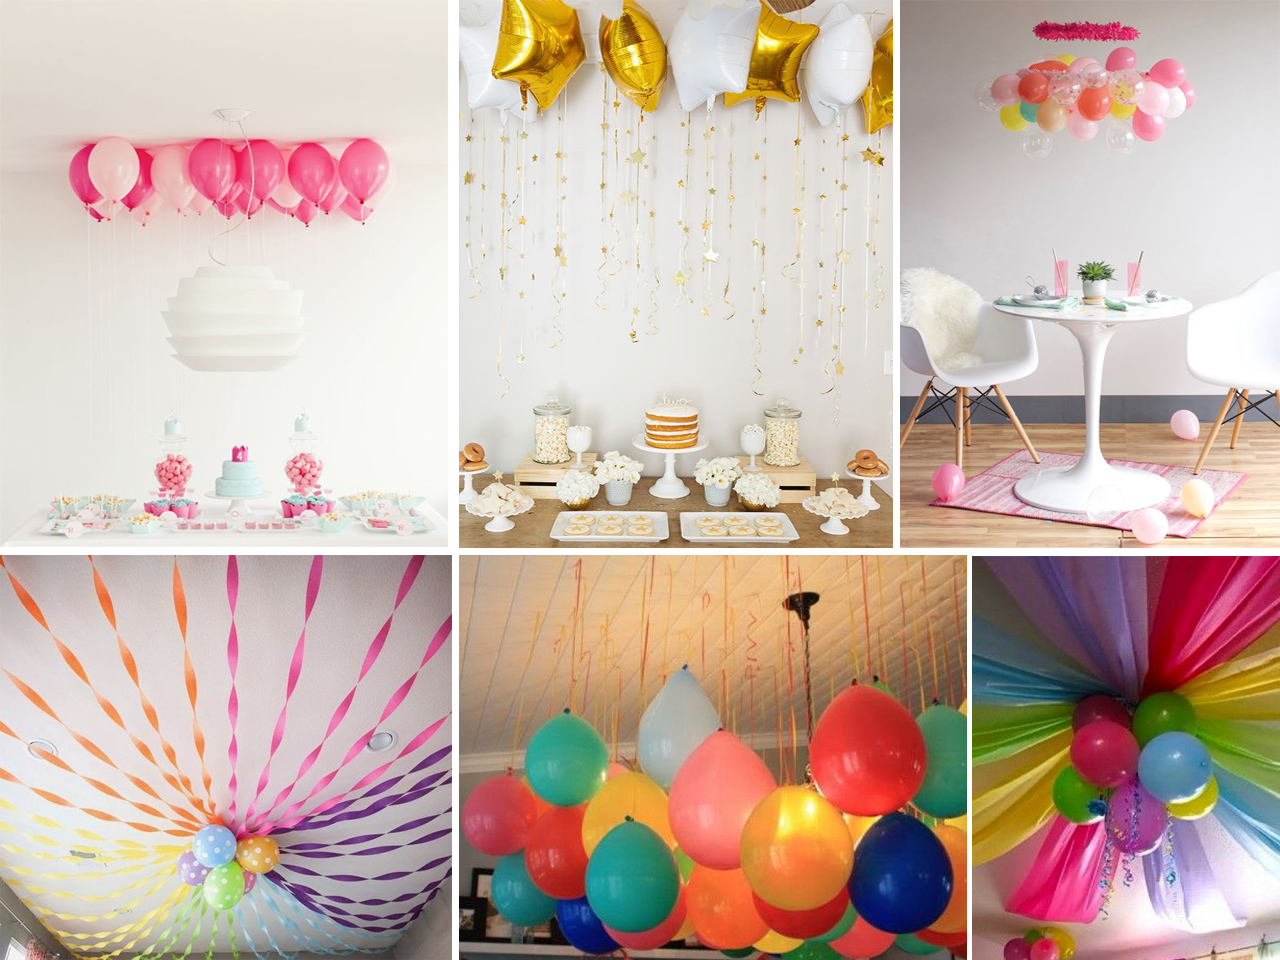 Descubre c mo decorar con globos con estas fant sticas ideas - Decoracion con cuerdas ...